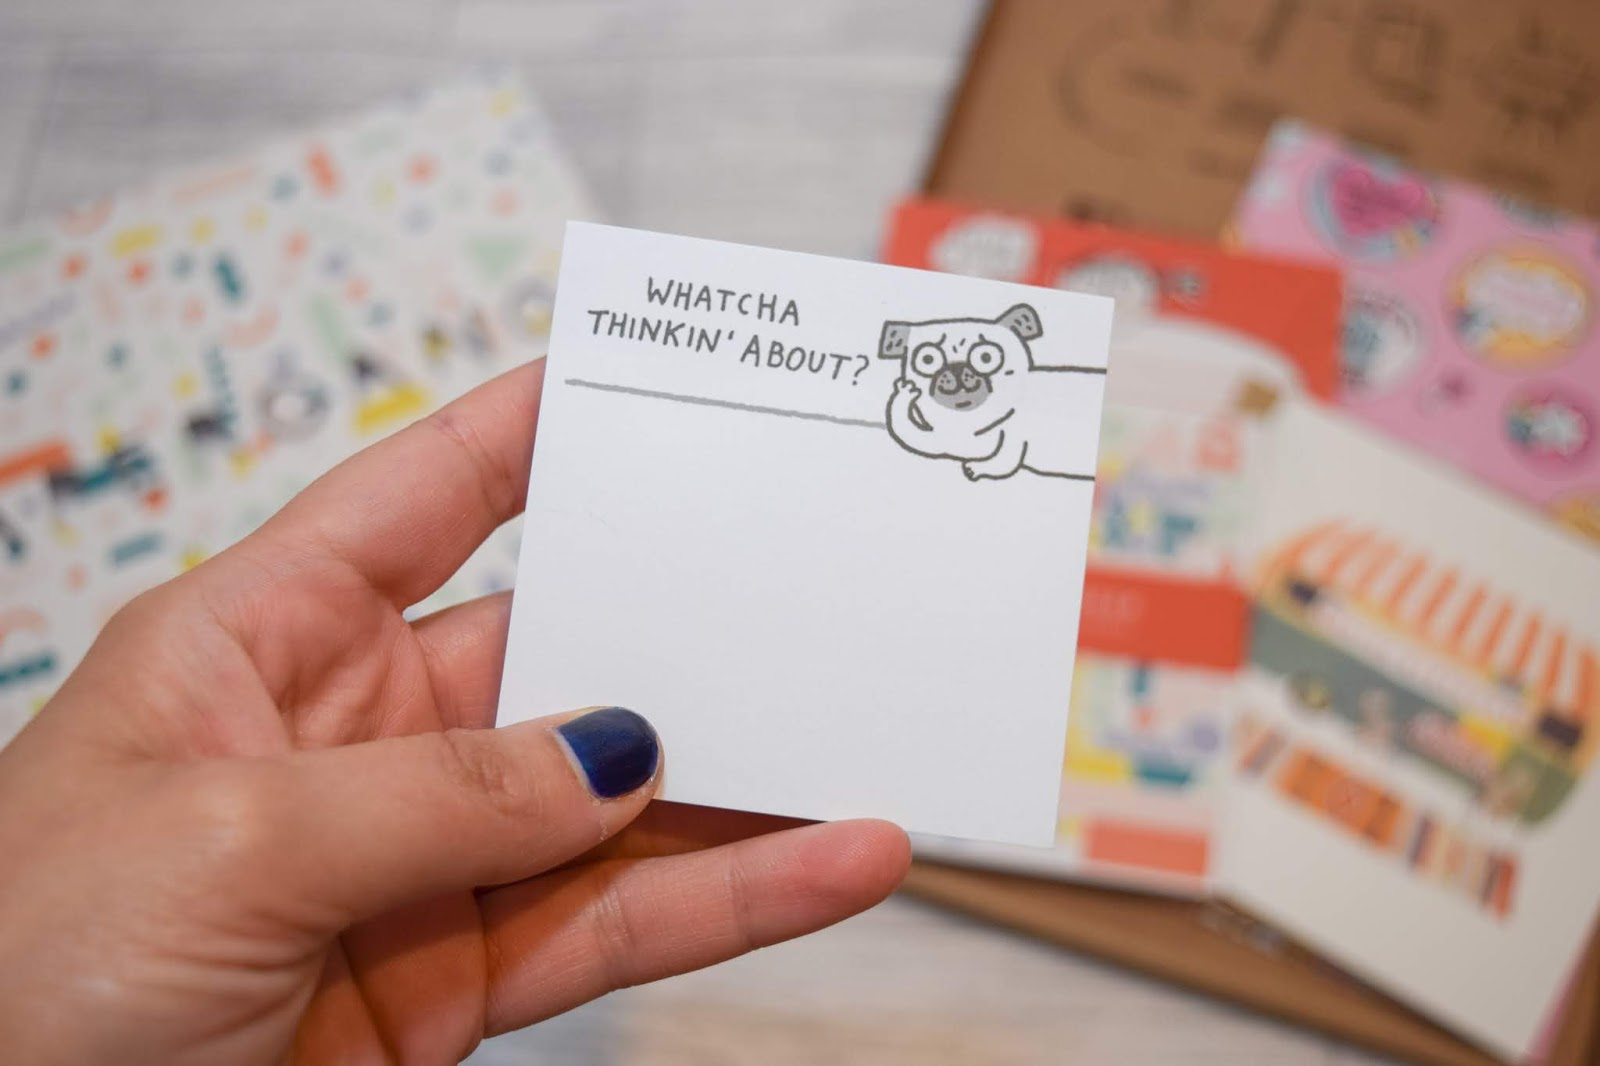 A hand holding post it notes with a dog and the sentence 'whatcha thinking about?'